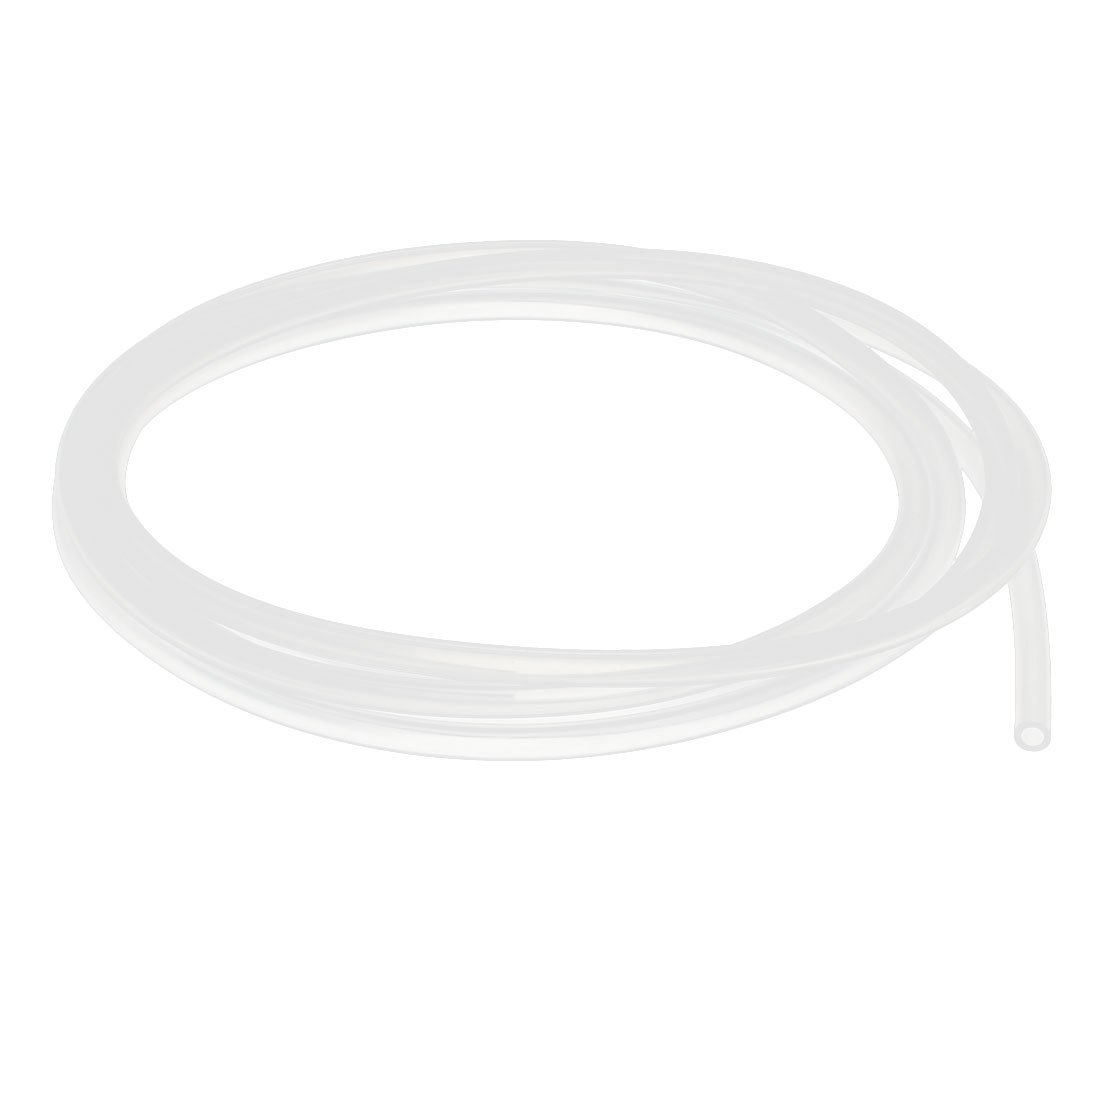 uxcell A15121600ux1000 3mm x 5mm Silicone Vacuum Translucent Tube Beer Water Air Pump Hose Pipe 2 Meters Long Semi-Clear